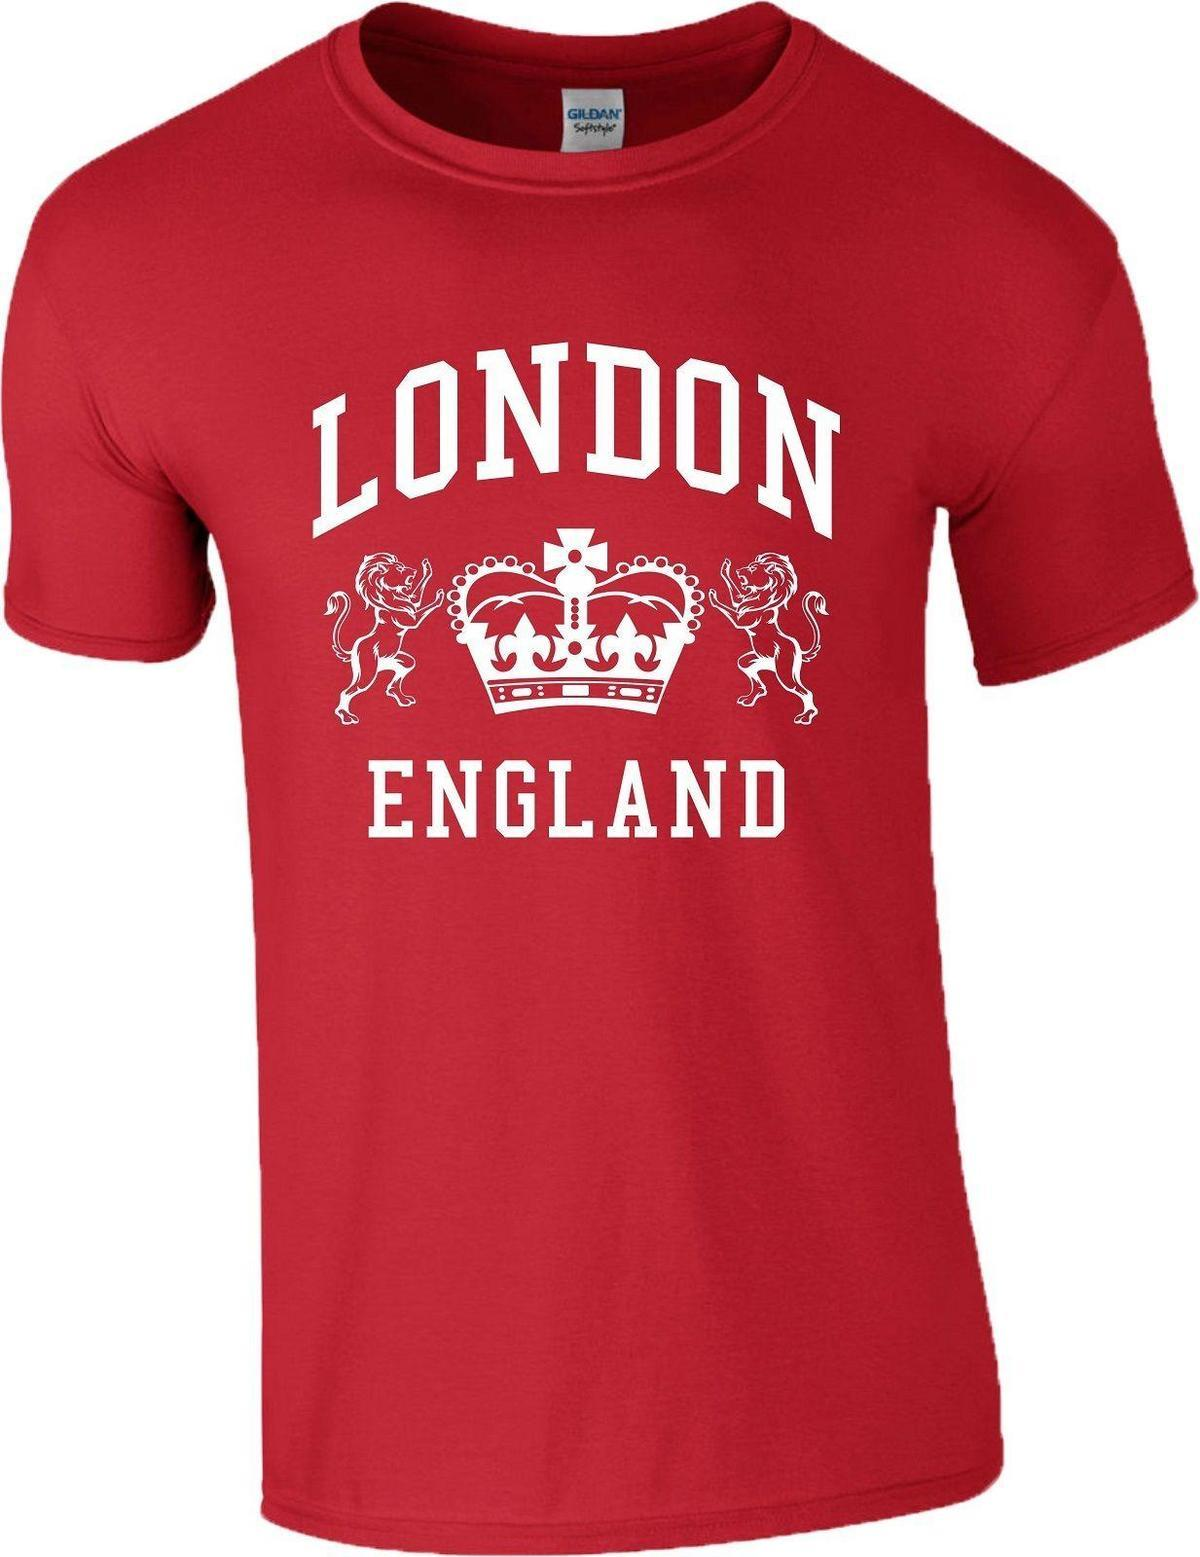 London England T Shirt Novelty Souvenir Tourist Holiday Birthday Gift Men Ladies Clever 10 From Amesion95 1208